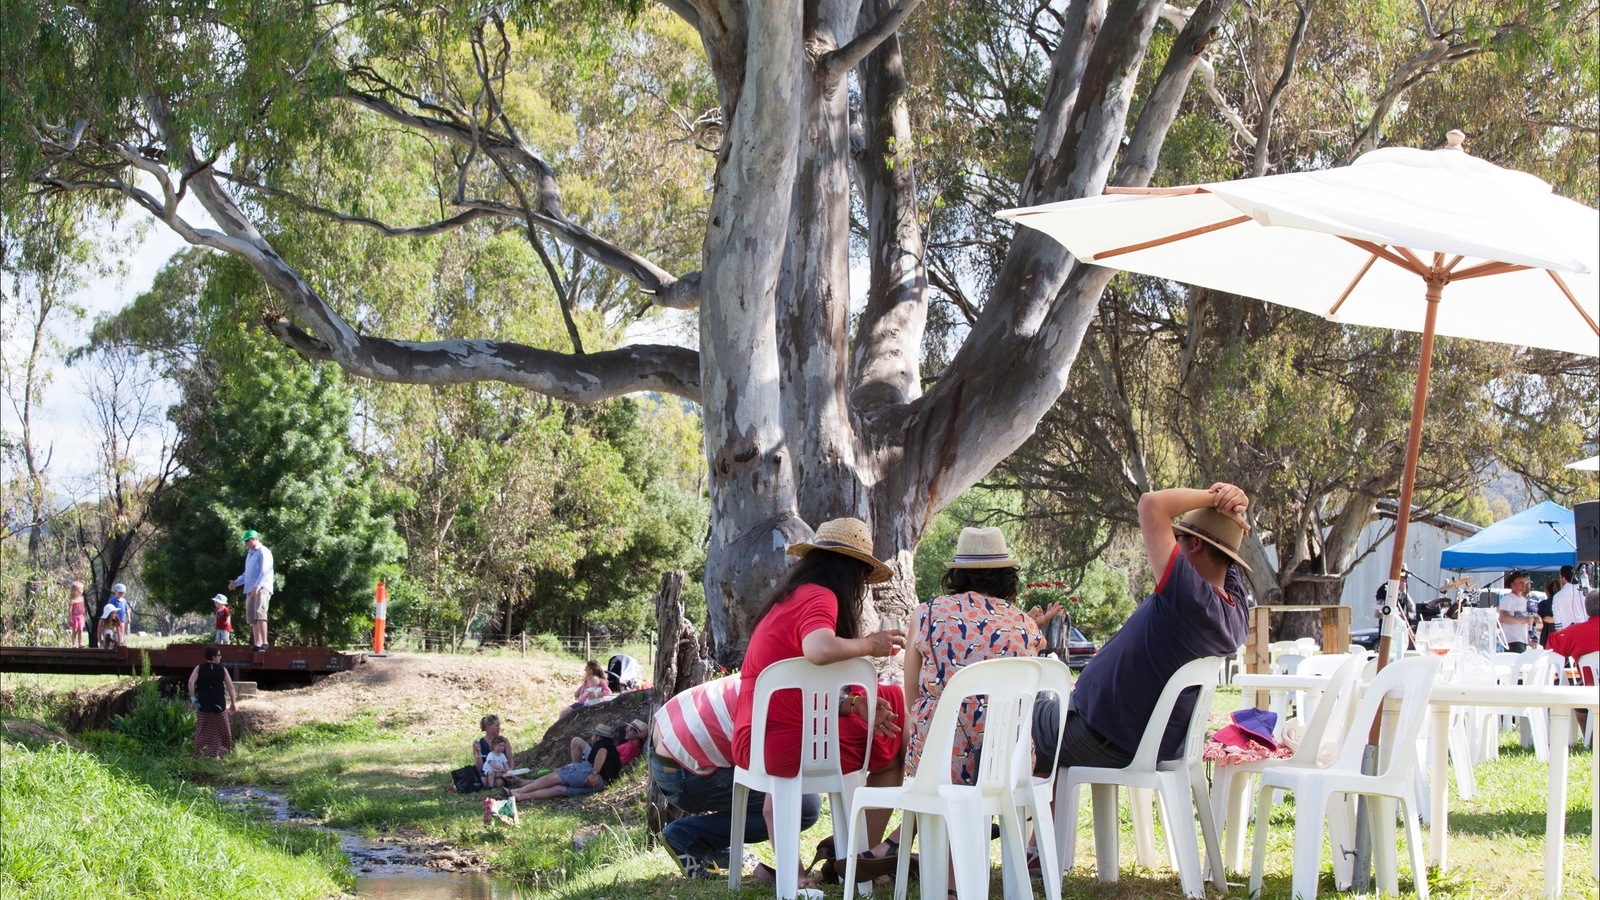 Drinking wine by the King River under 140 year old gum trees